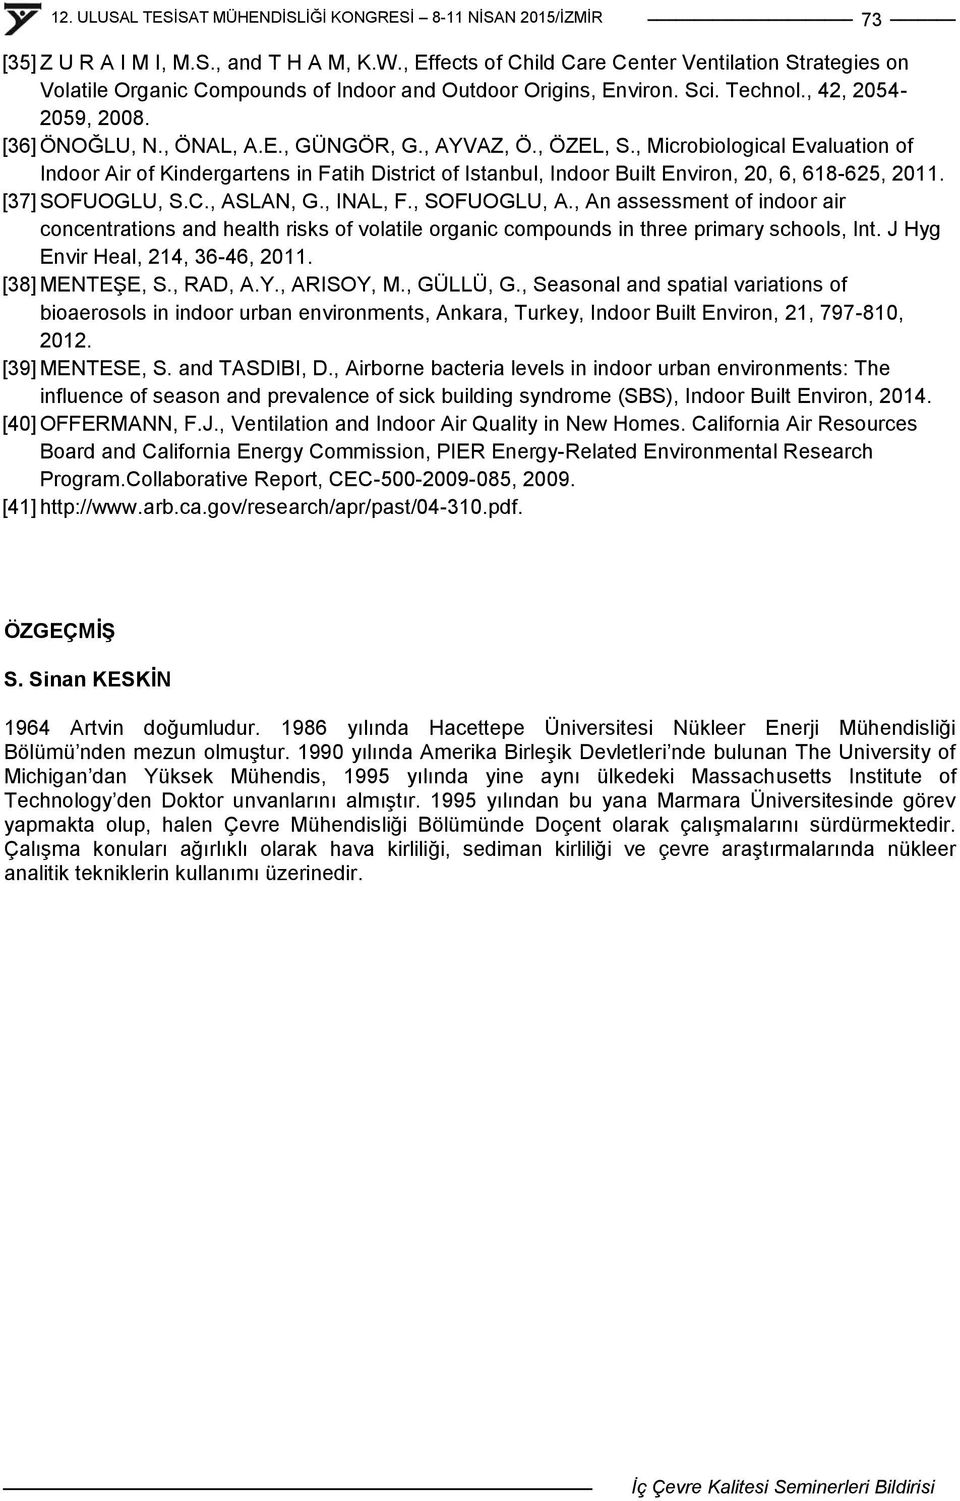 , Microbiological Evaluation of Indoor Air of Kindergartens in Fatih District of Istanbul, Indoor Built Environ, 20, 6, 618-625, 2011. [37] SOFUOGLU, S.C., ASLAN, G., INAL, F., SOFUOGLU, A.